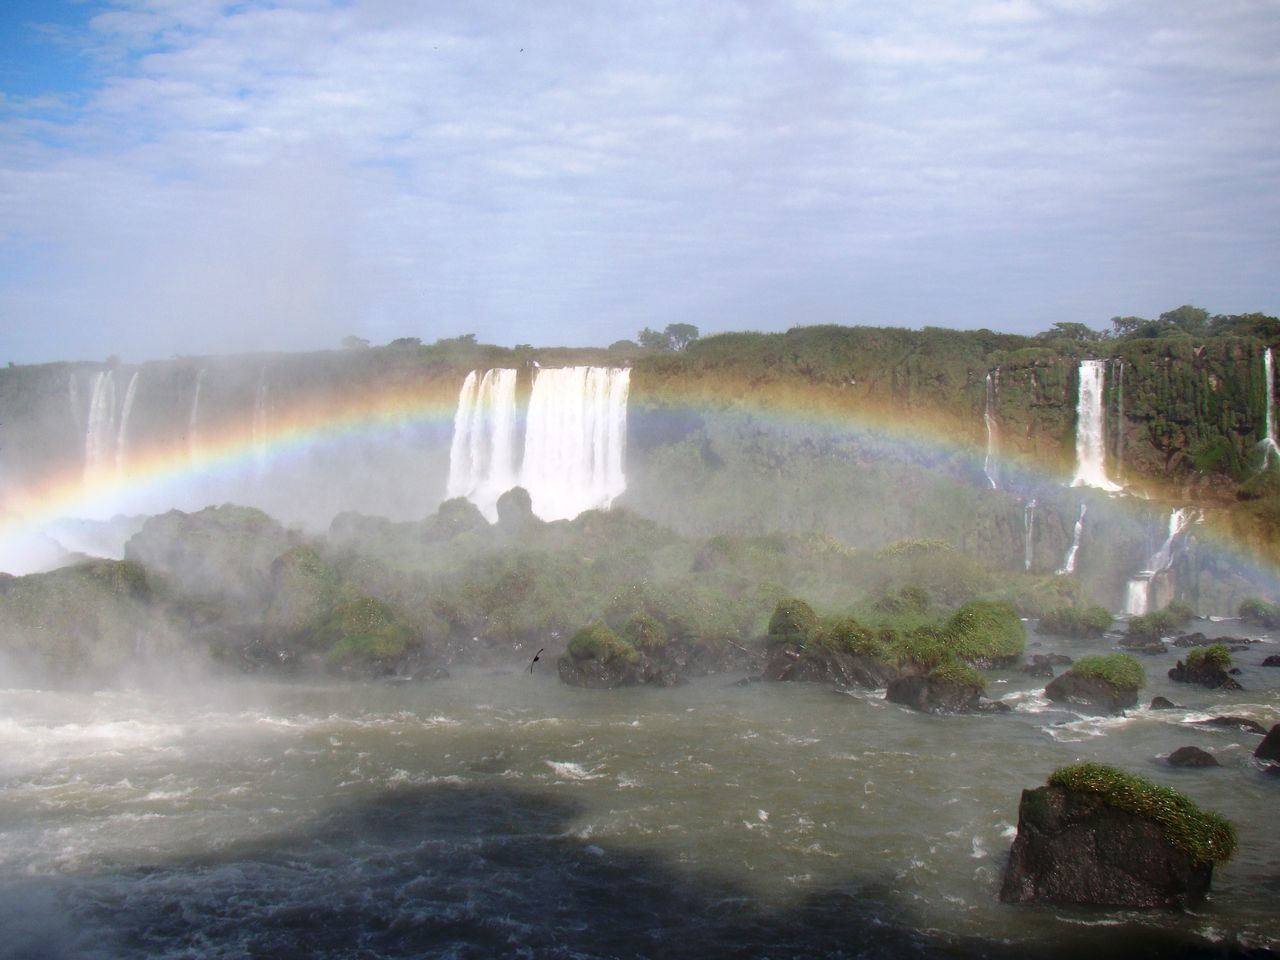 SCENIC VIEW OF RAINBOW OVER WATER